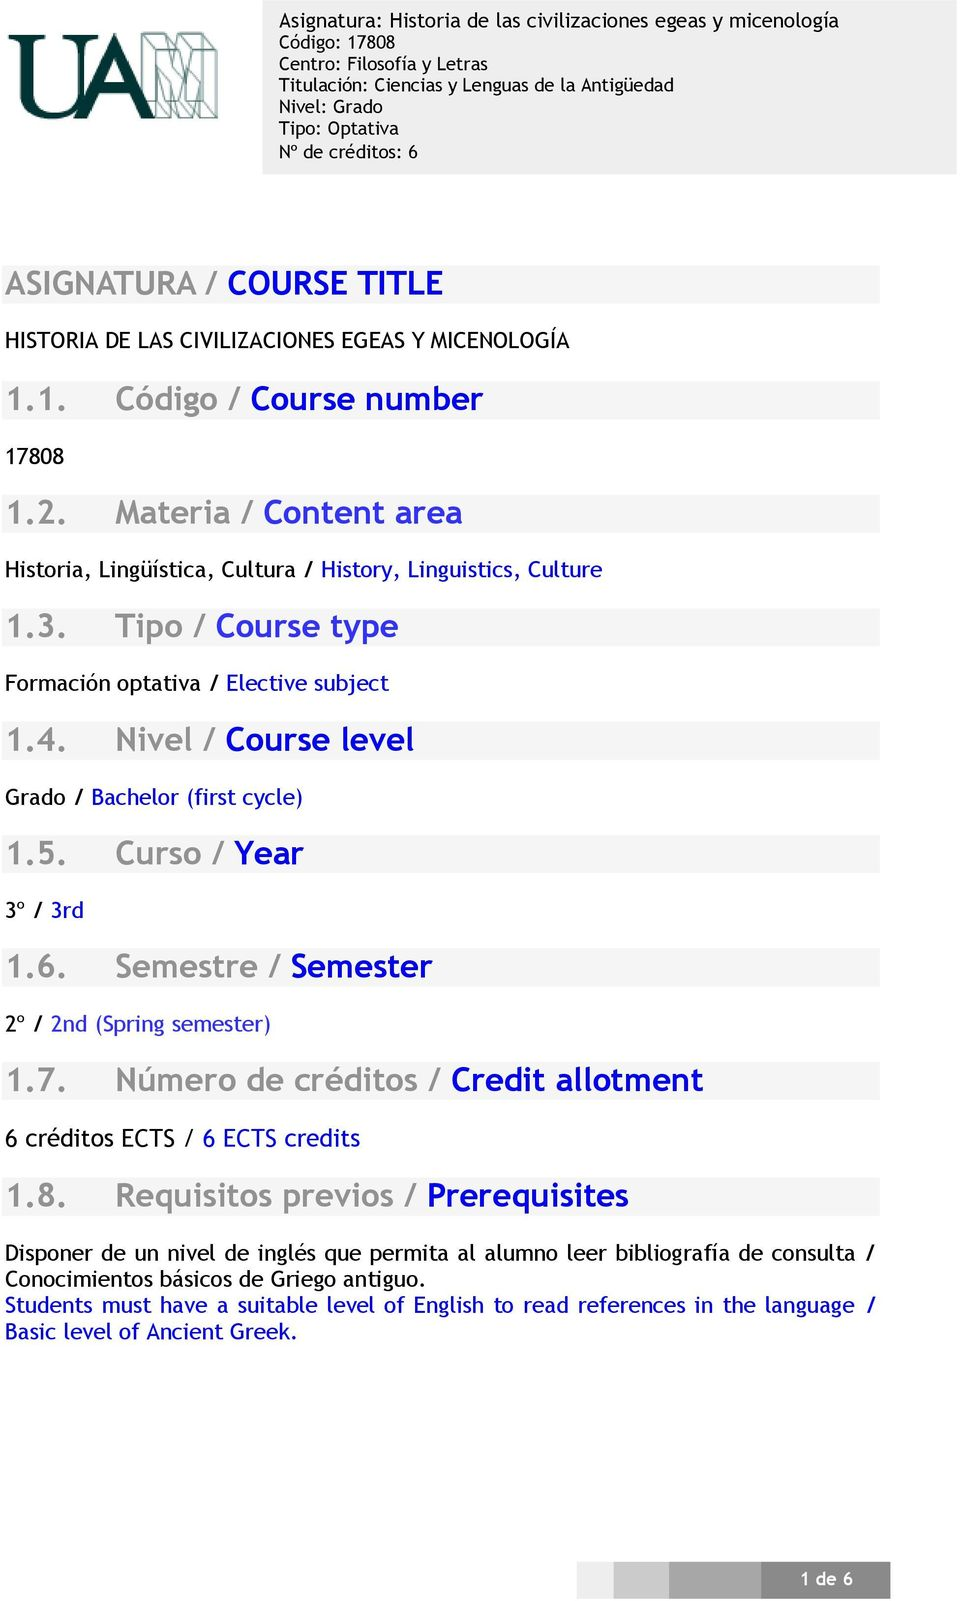 Nivel / Course level Grado / Bachelor (first cycle) 1.5. Curso / Year 3º / 3rd 1.6. Semestre / Semester 2º / 2nd (Spring semester) 1.7.